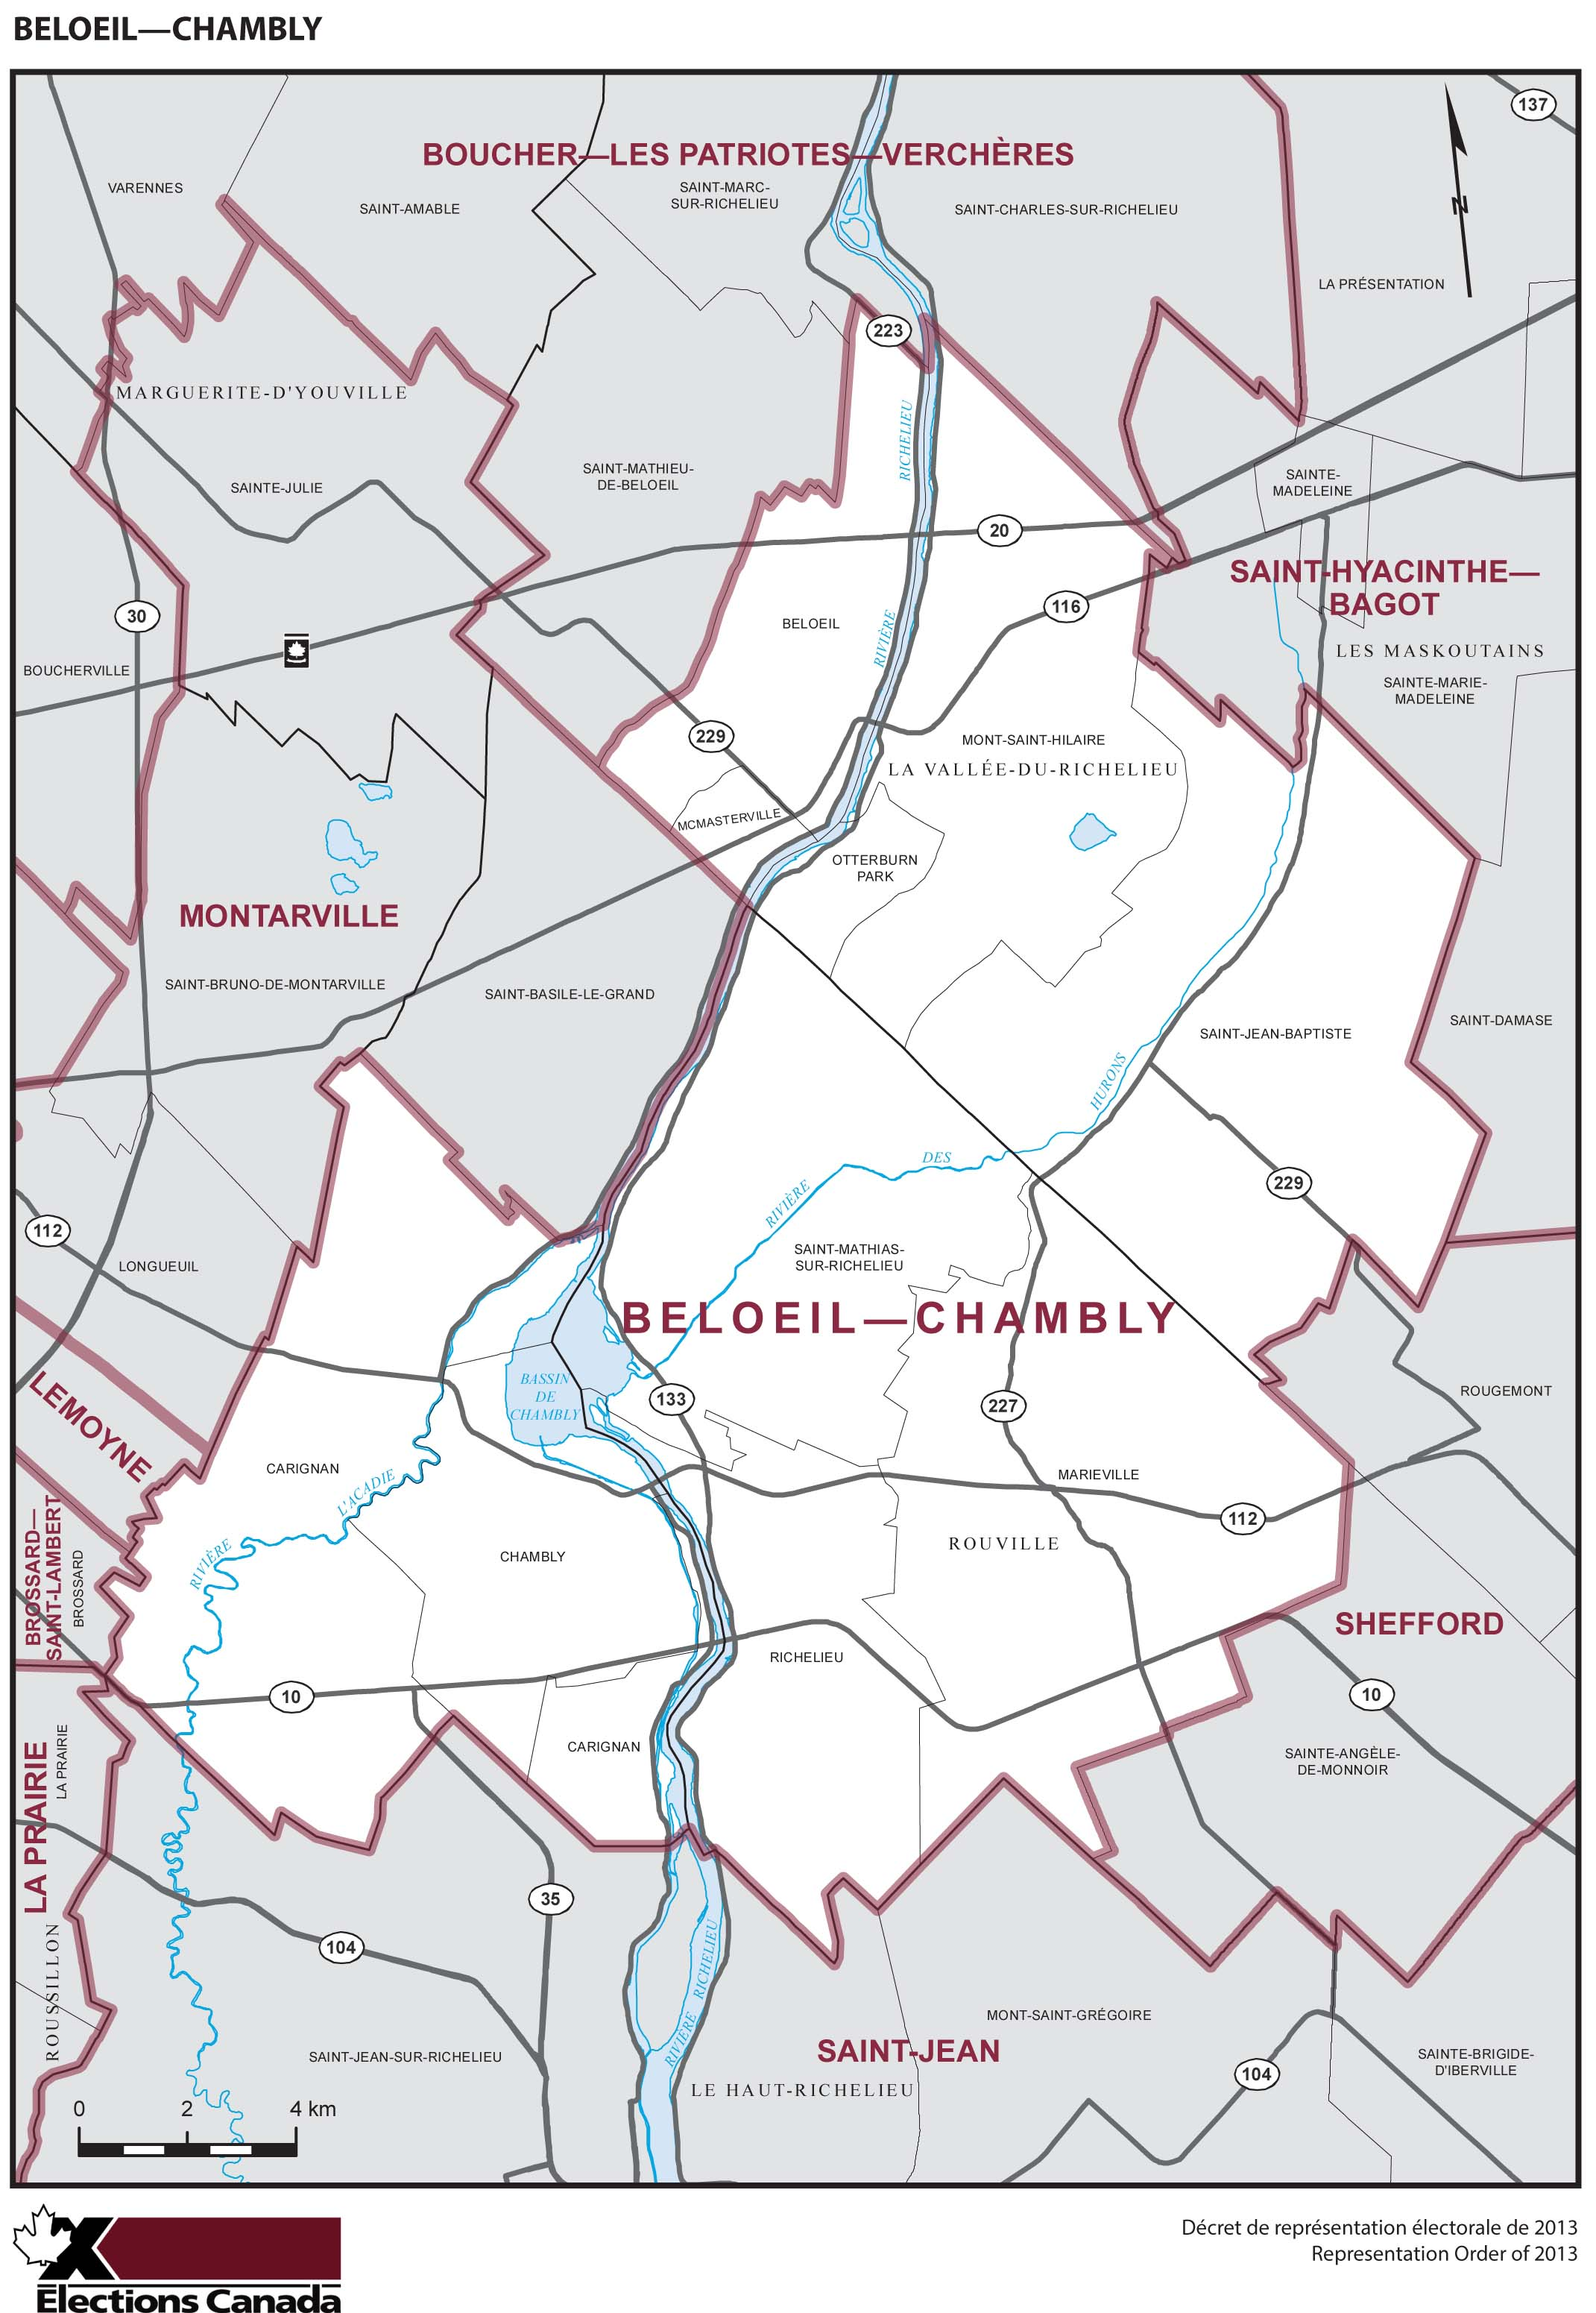 Map: Beloeil--Chambly, Federal electoral district, 2013 Representation Order (in white), Quebec